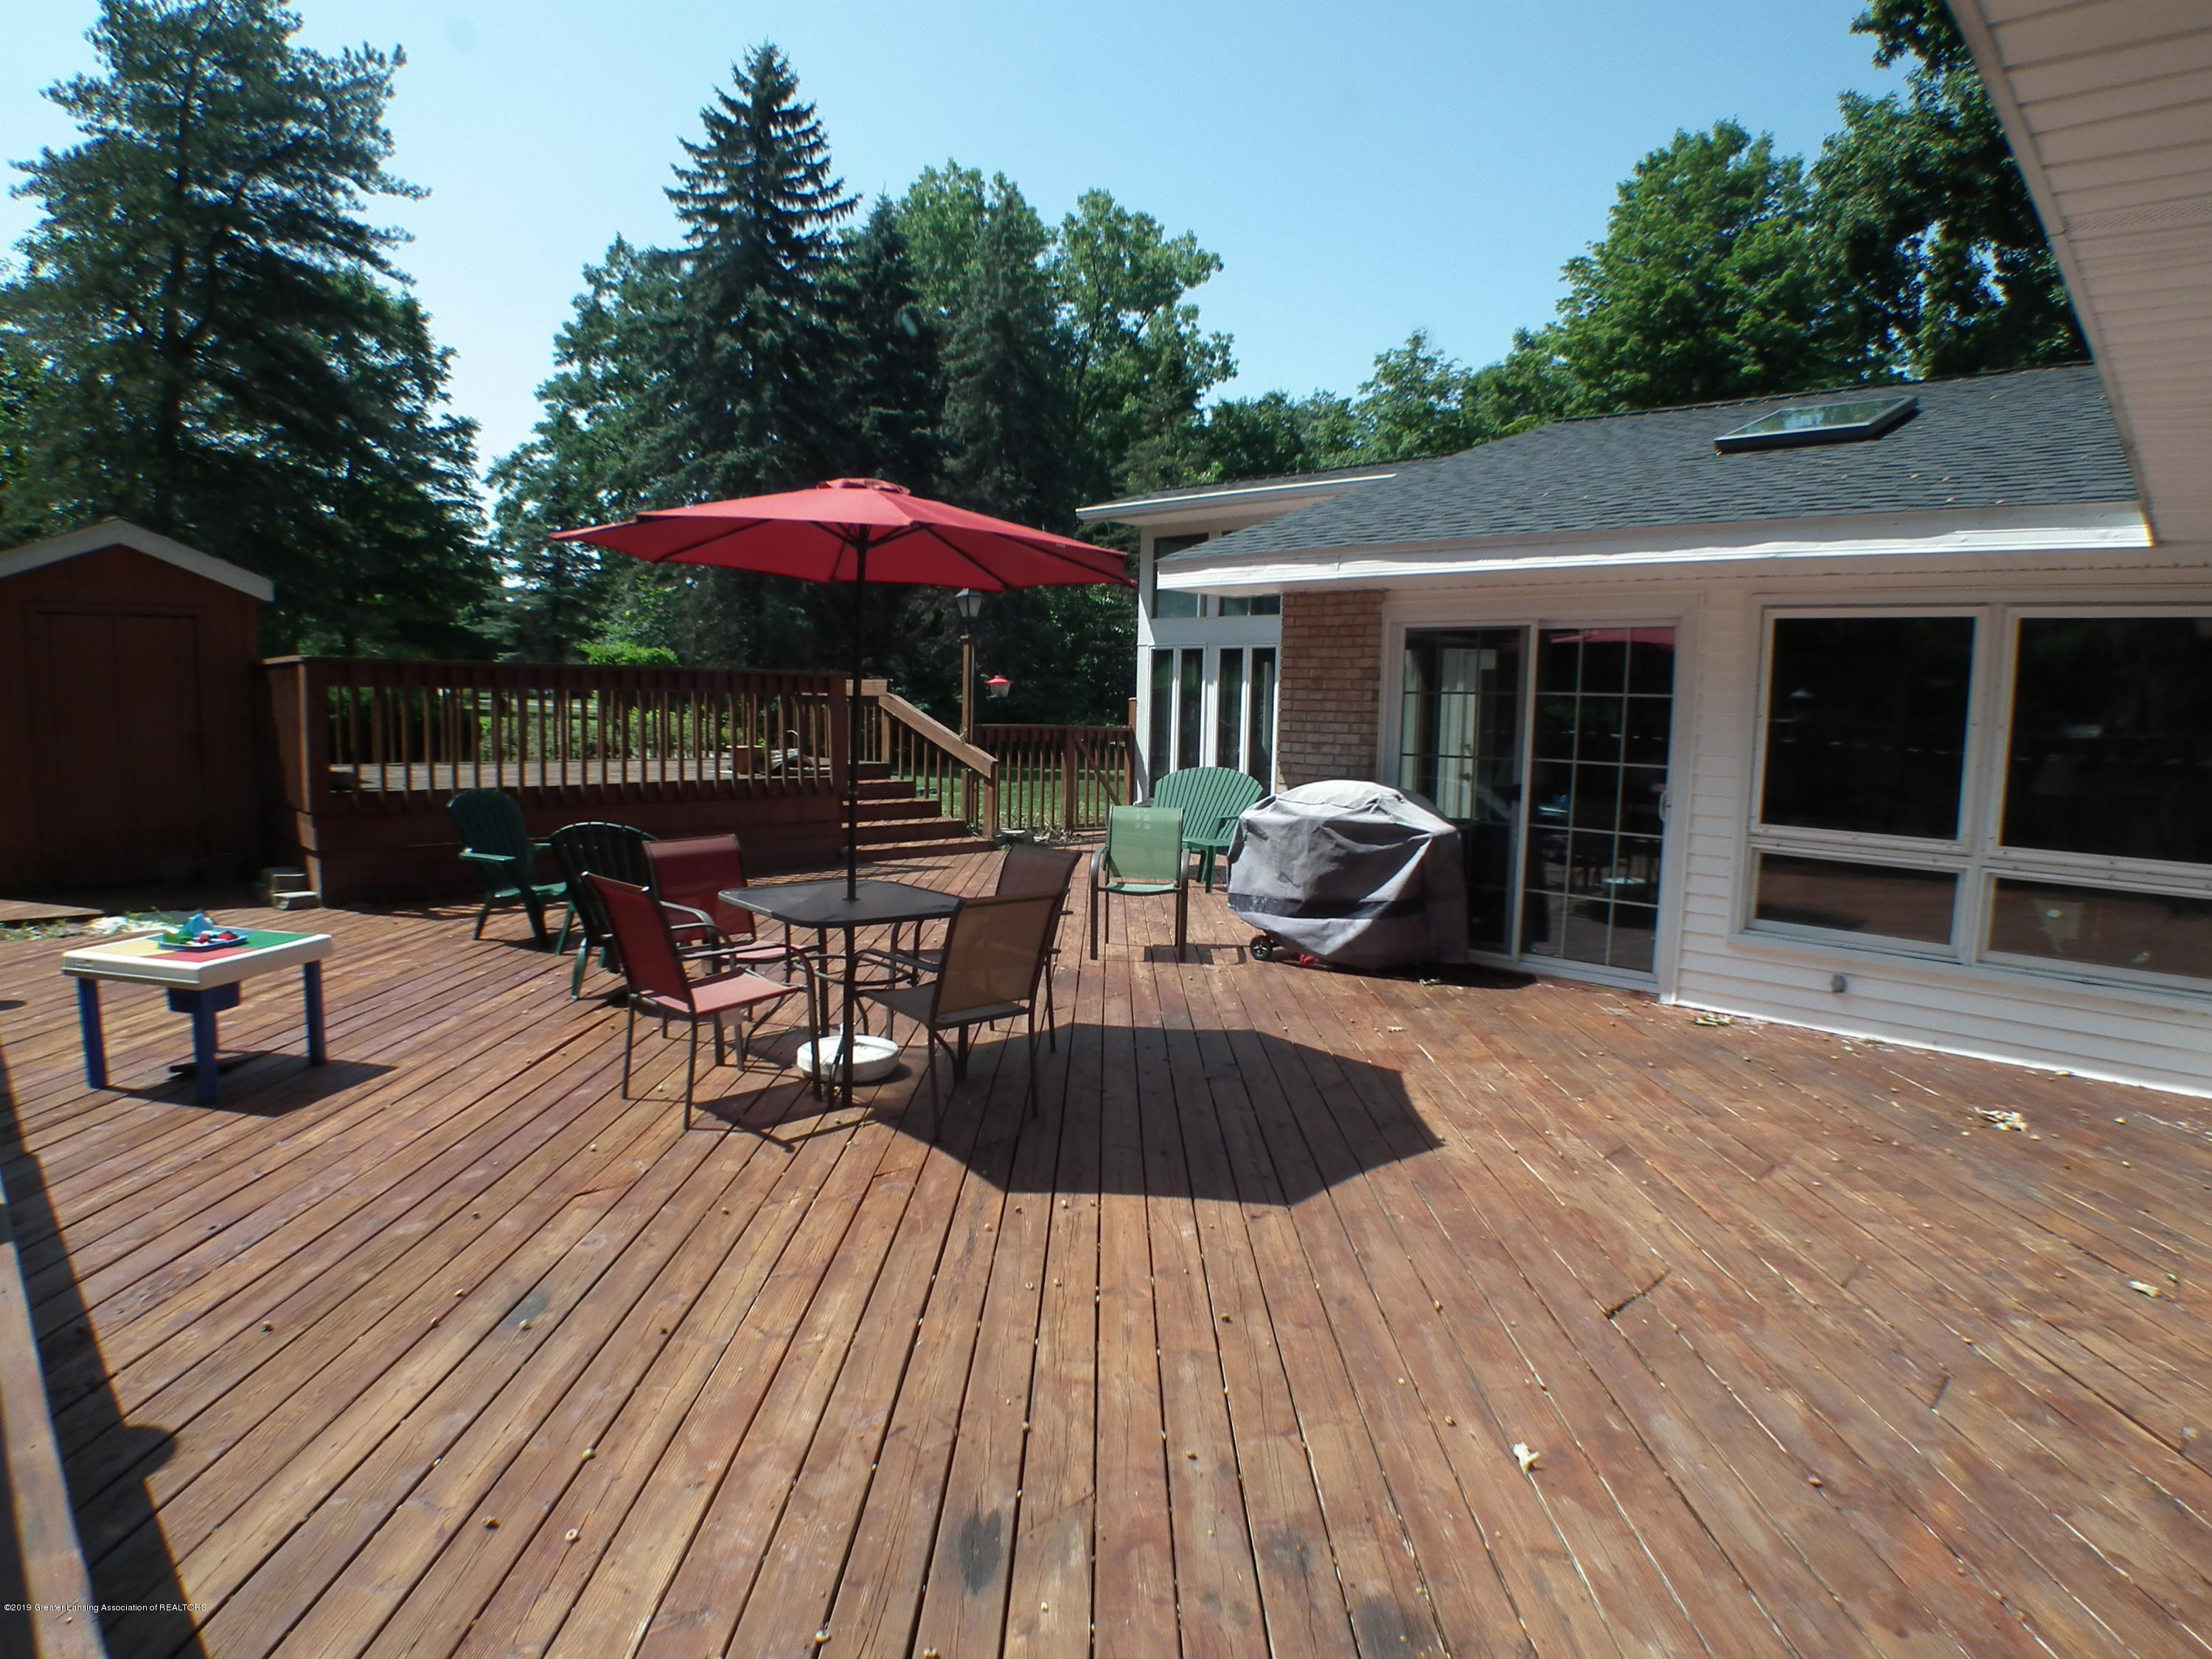 5600 Grand River Dr - Deck area b - 45